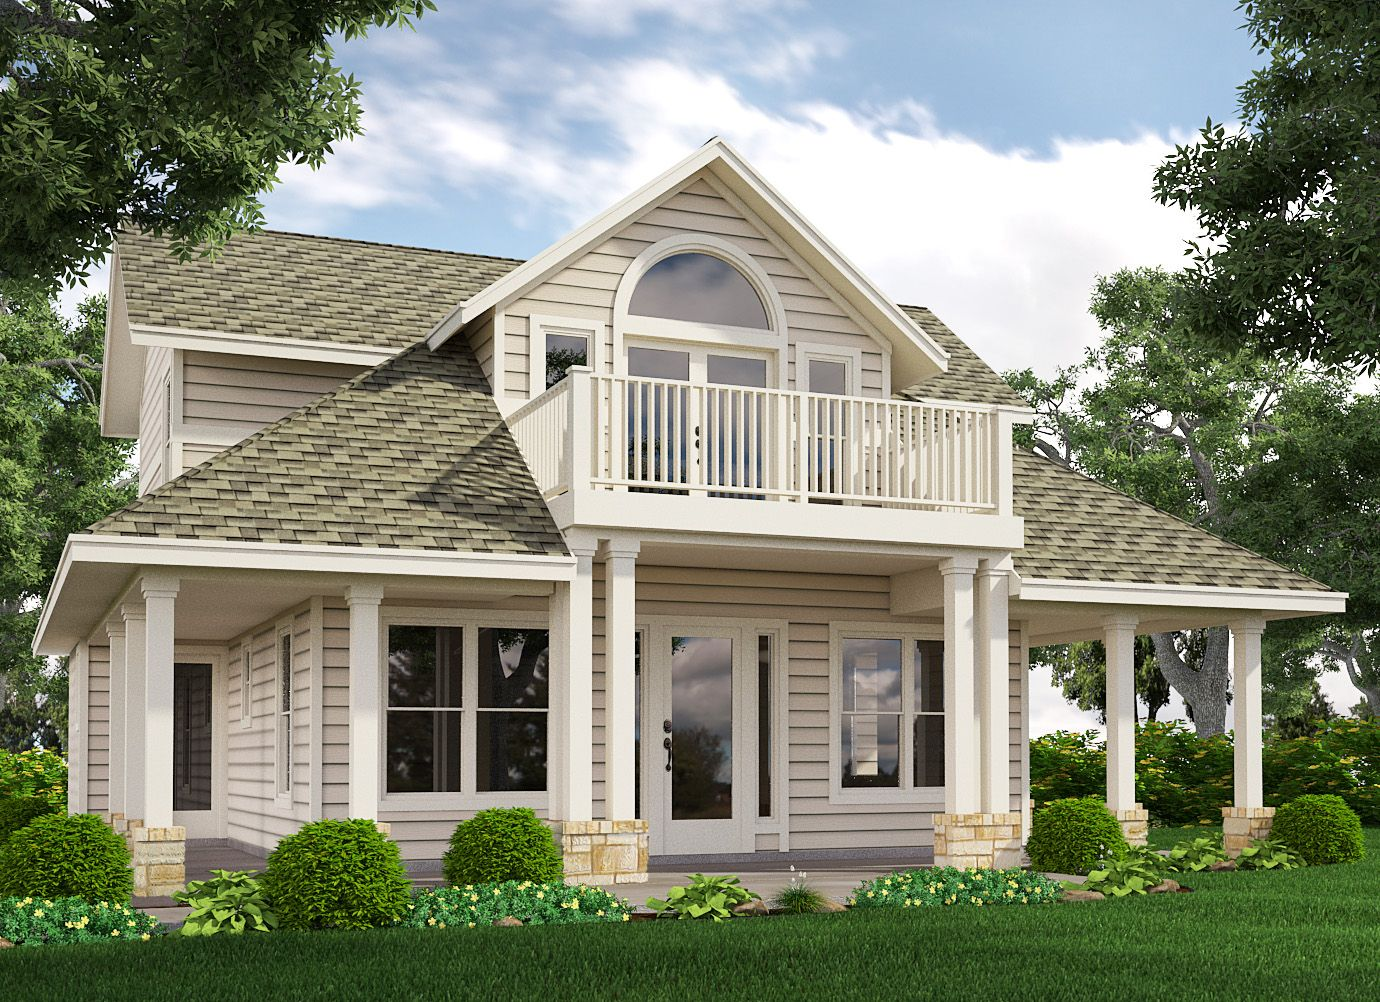 Plan 31118d loft with balcony loft spaces balconies Cottage floor